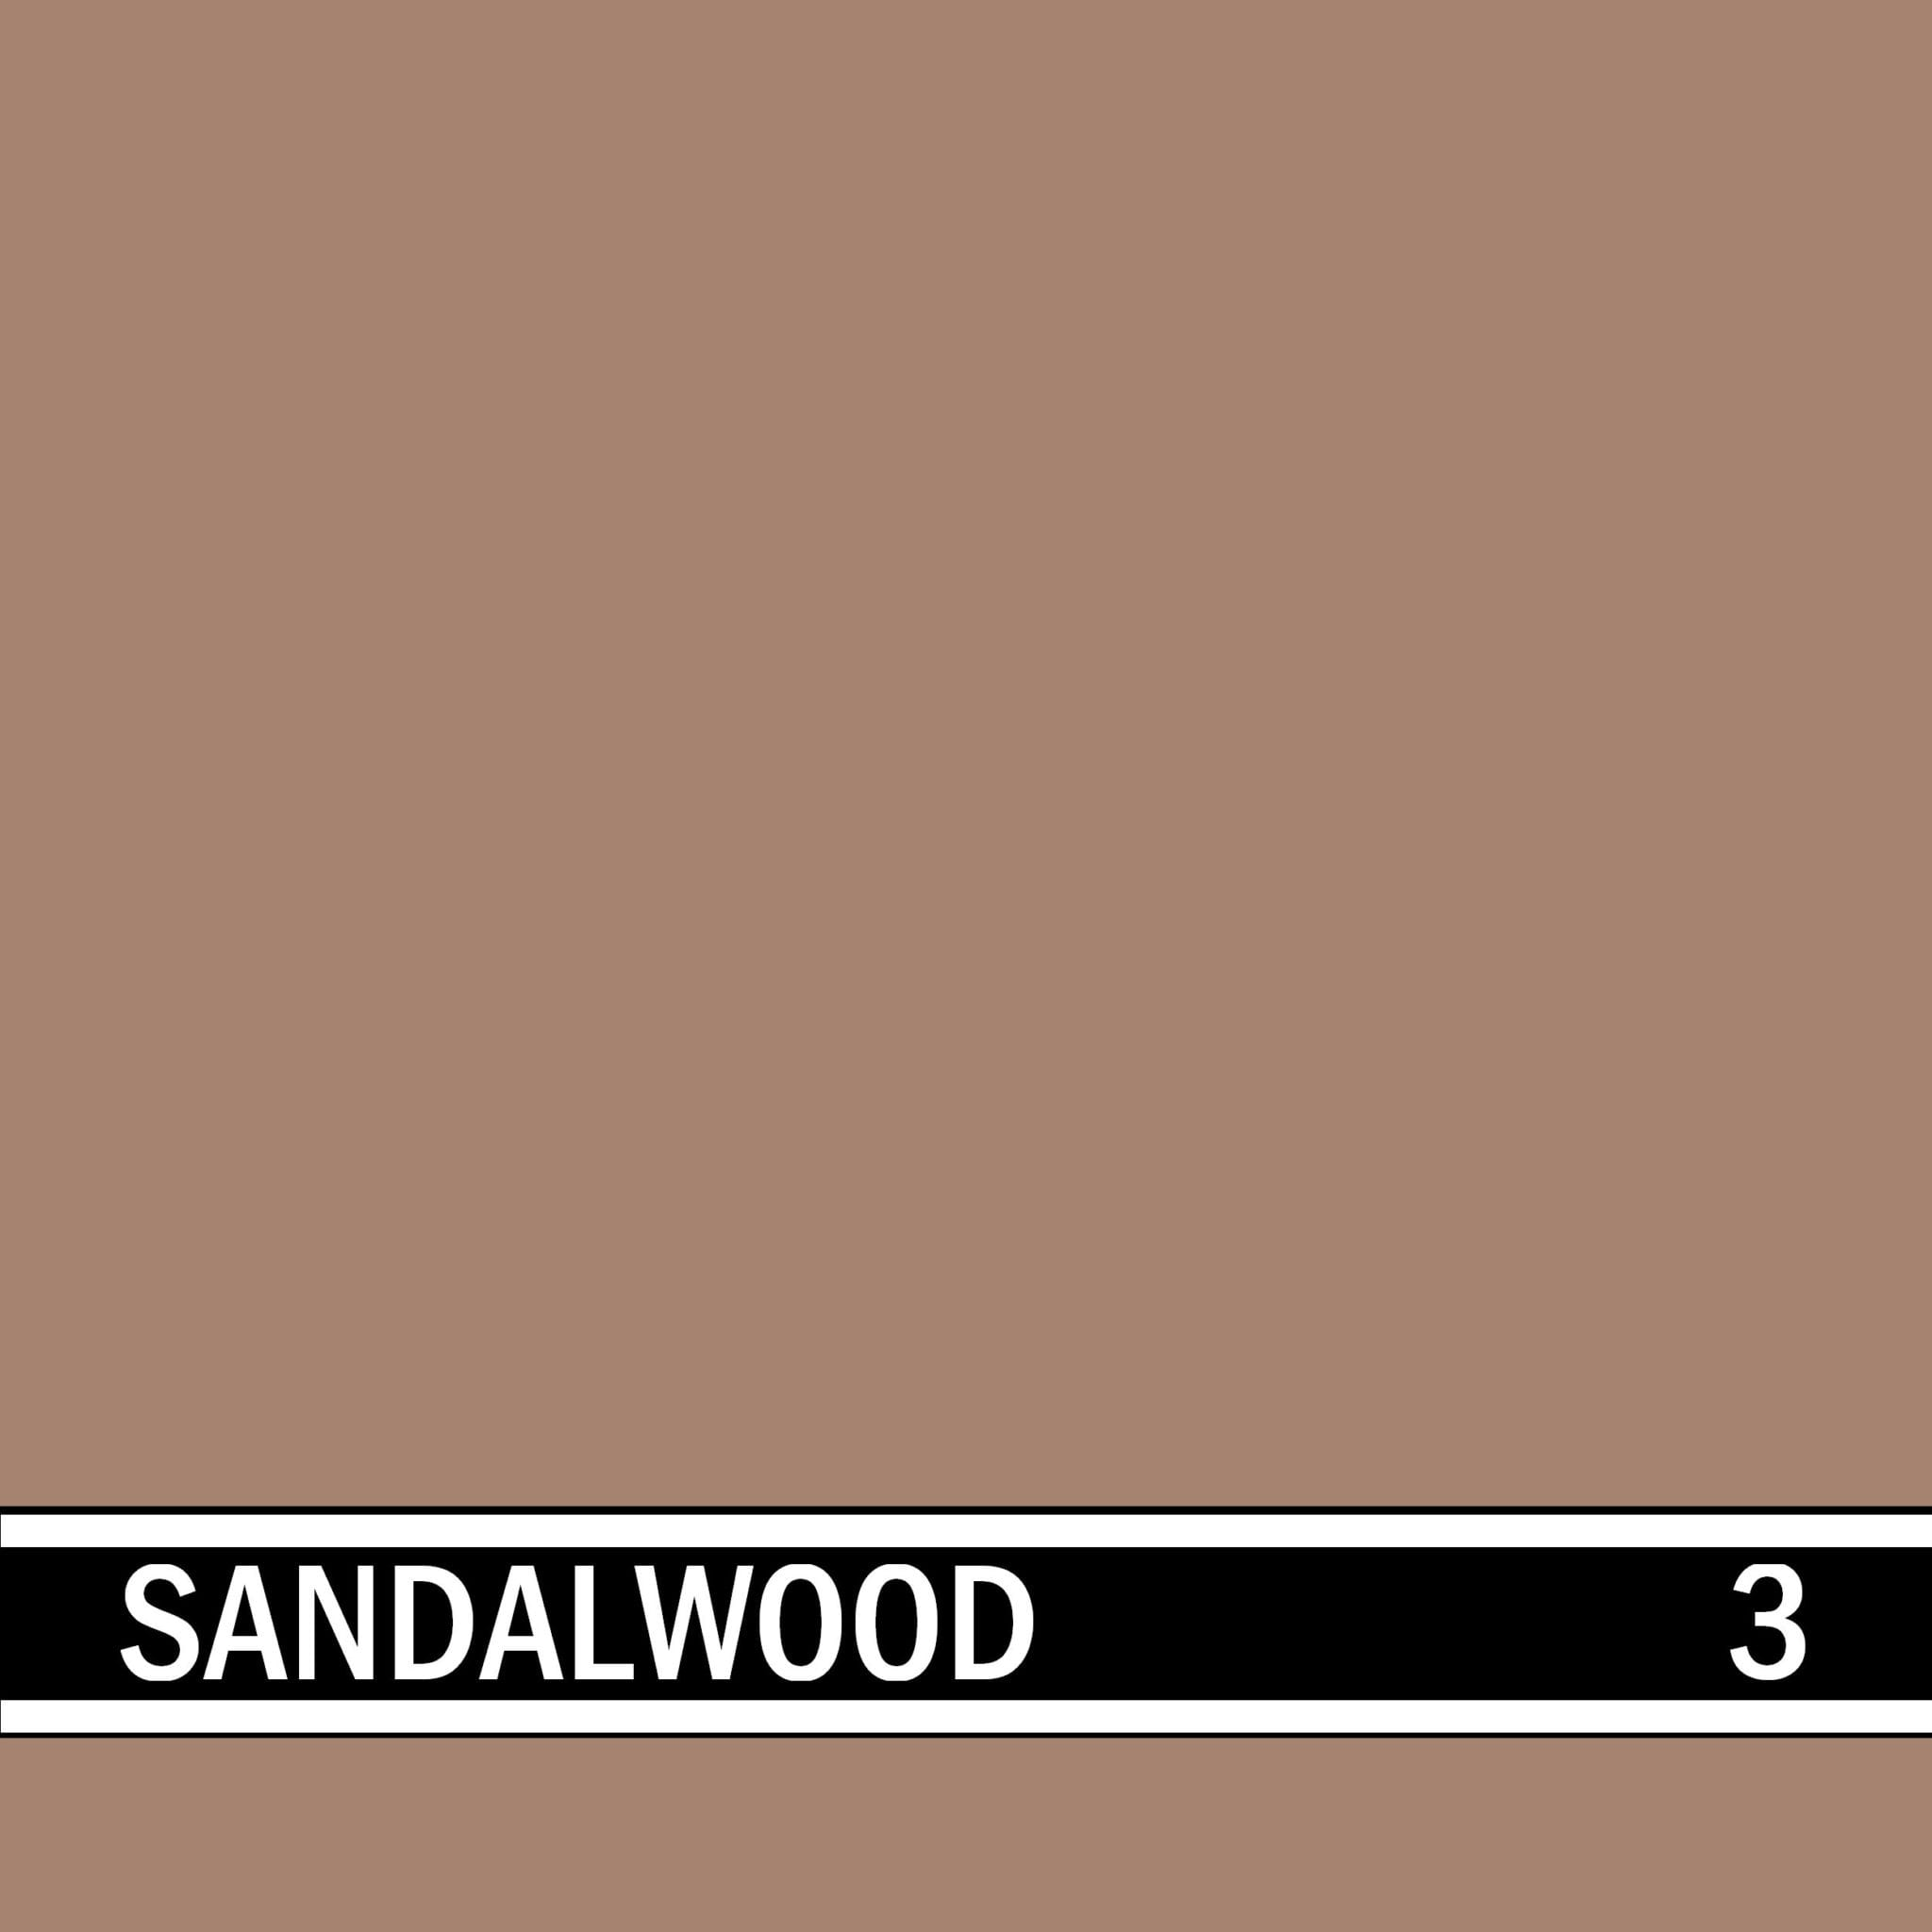 Sandalwood integral concrete color for stamped concrete and decorative colored concrete